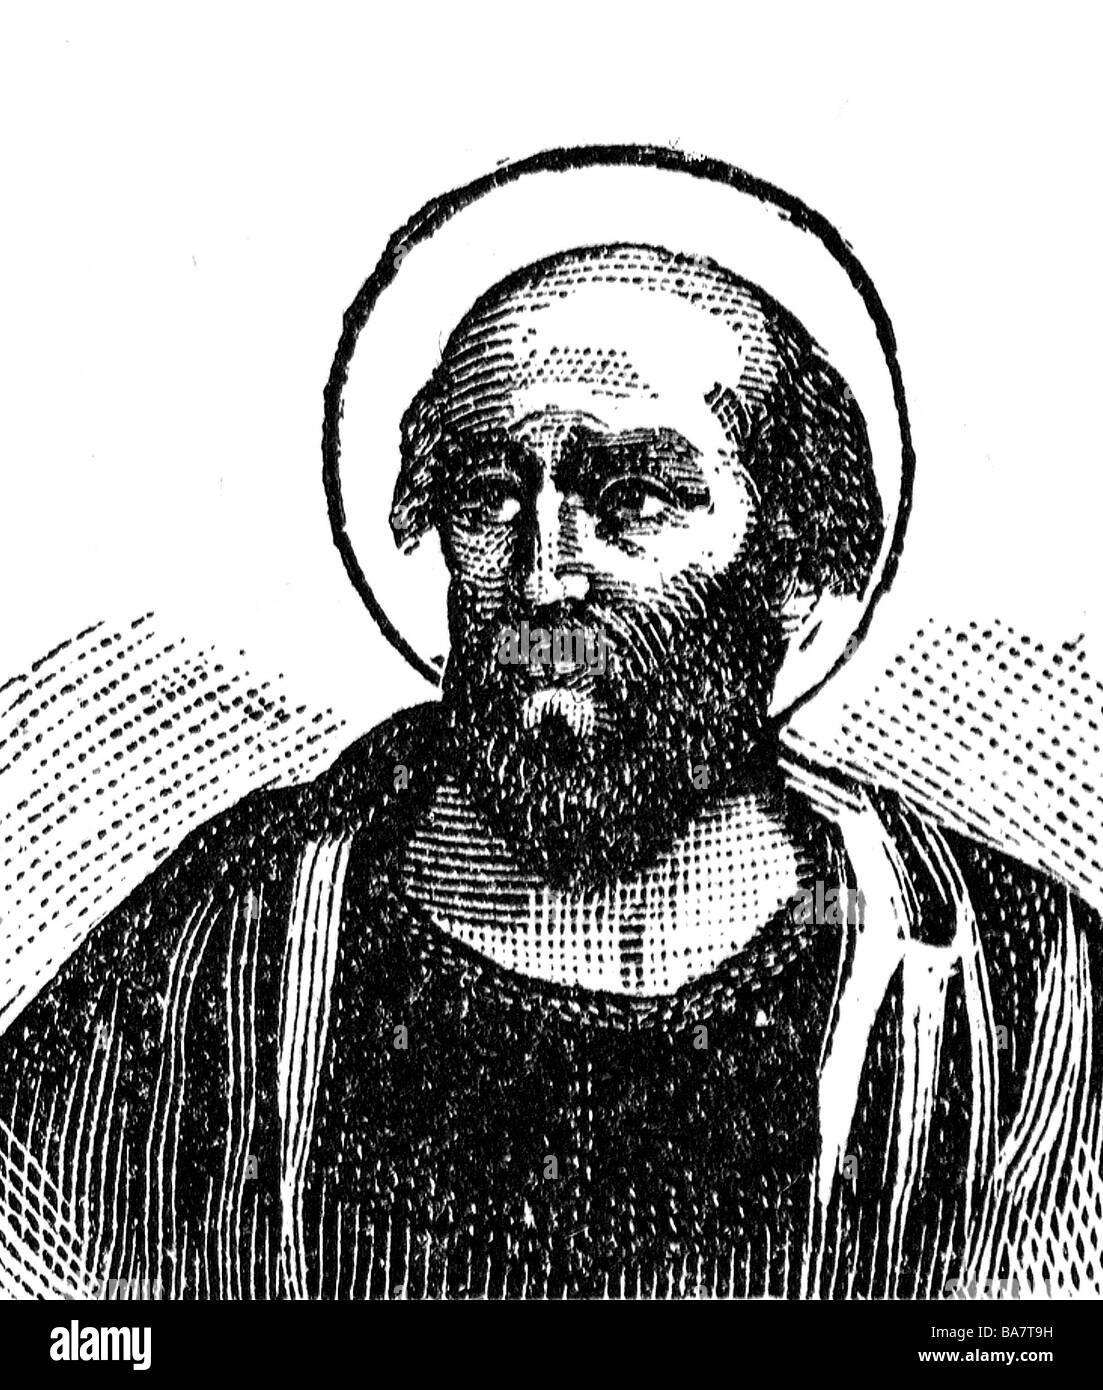 Hyginus, + 140, pope 136 - 140, Saint, portrait, history painting, wood engraving, circa 1900, Additional-Rights Stock Photo